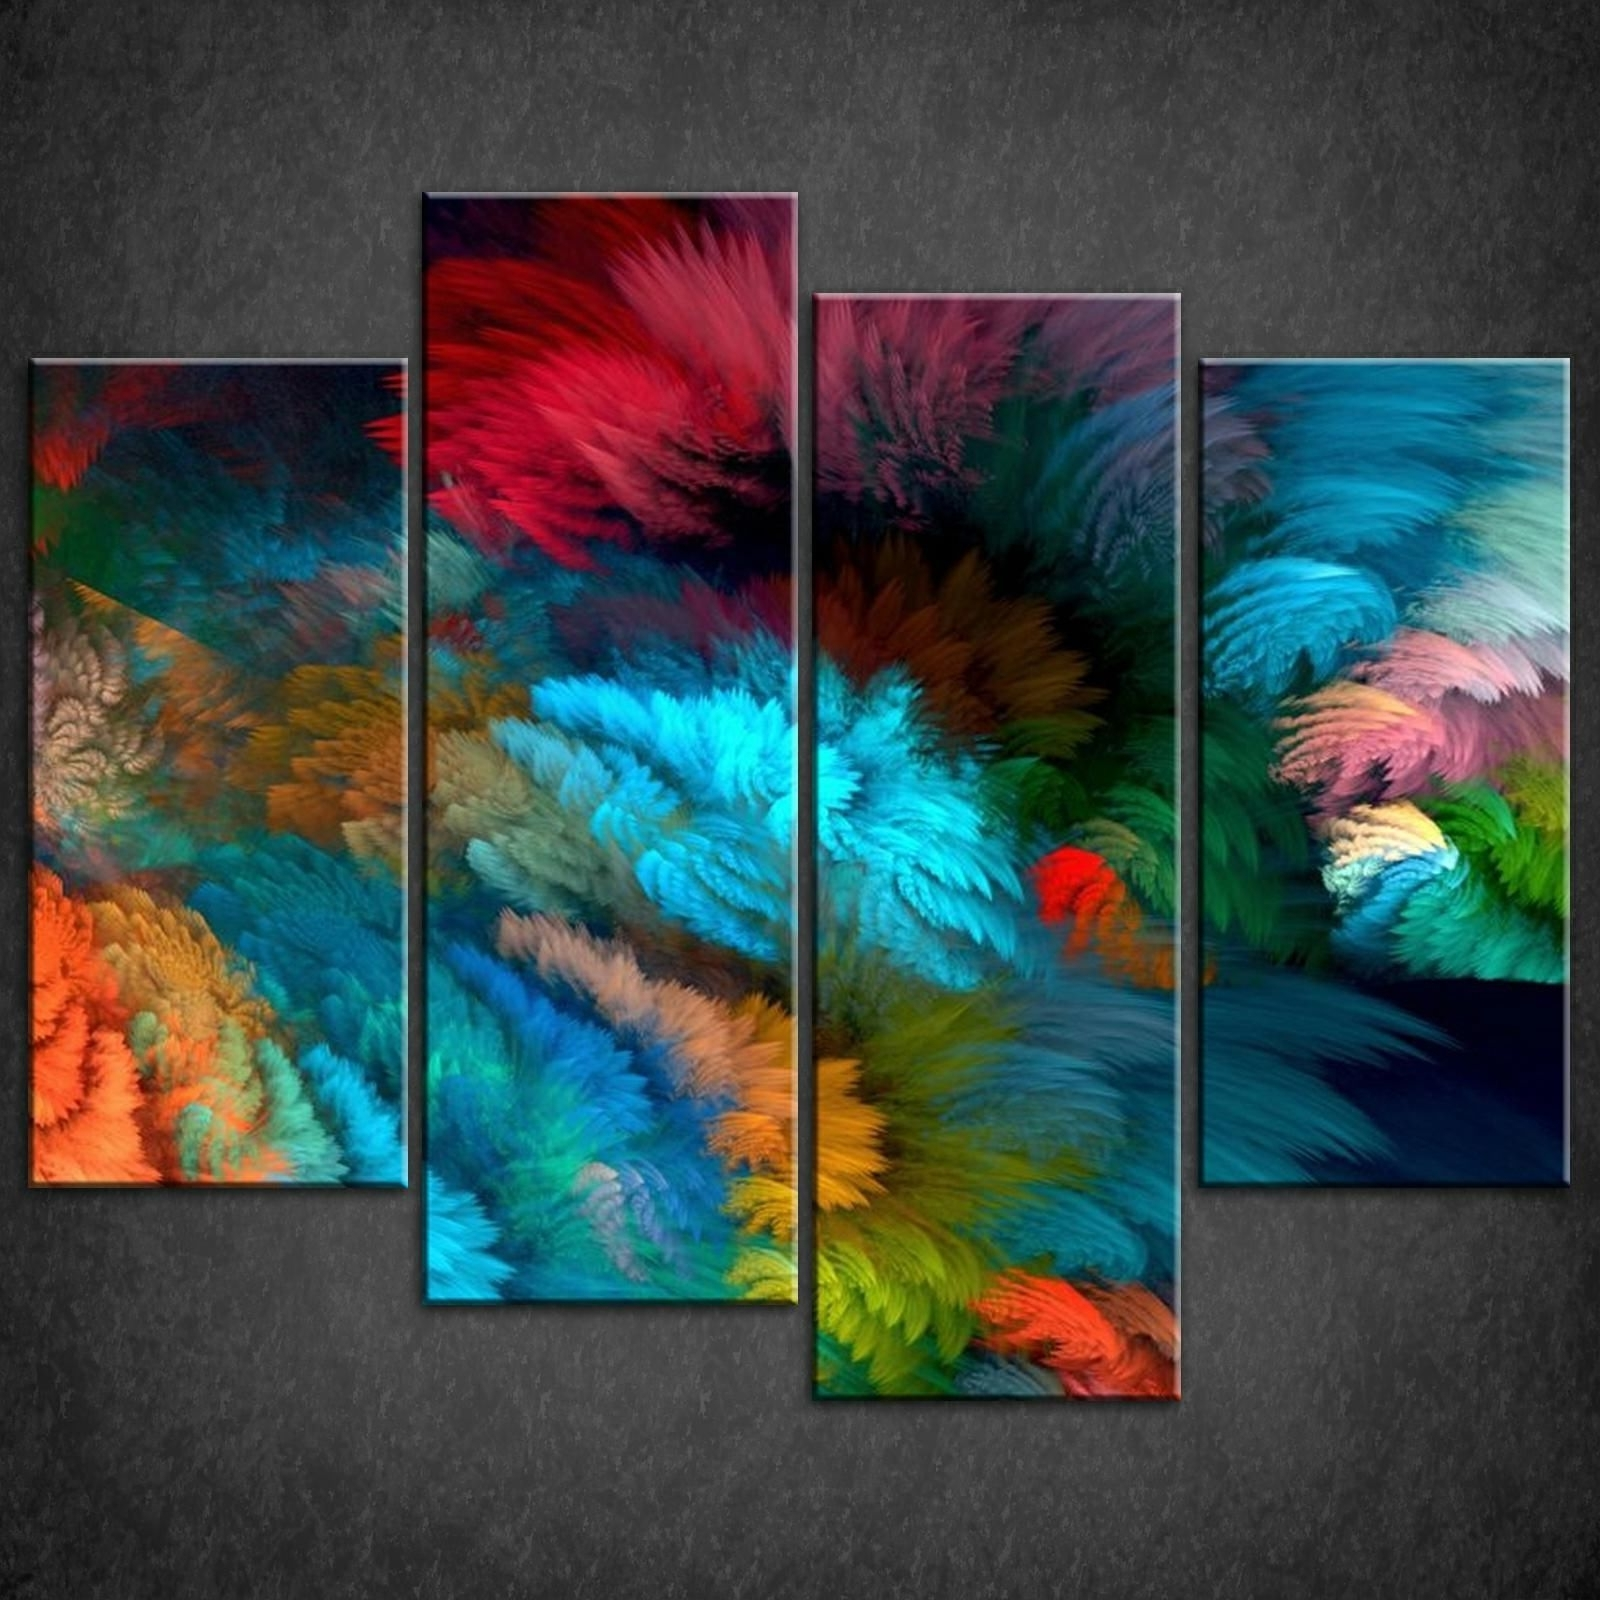 Widely Used Abstract Canvas Wall Art With Regard To Abstract Painting Picture Canvas Wall Art (View 9 of 15)